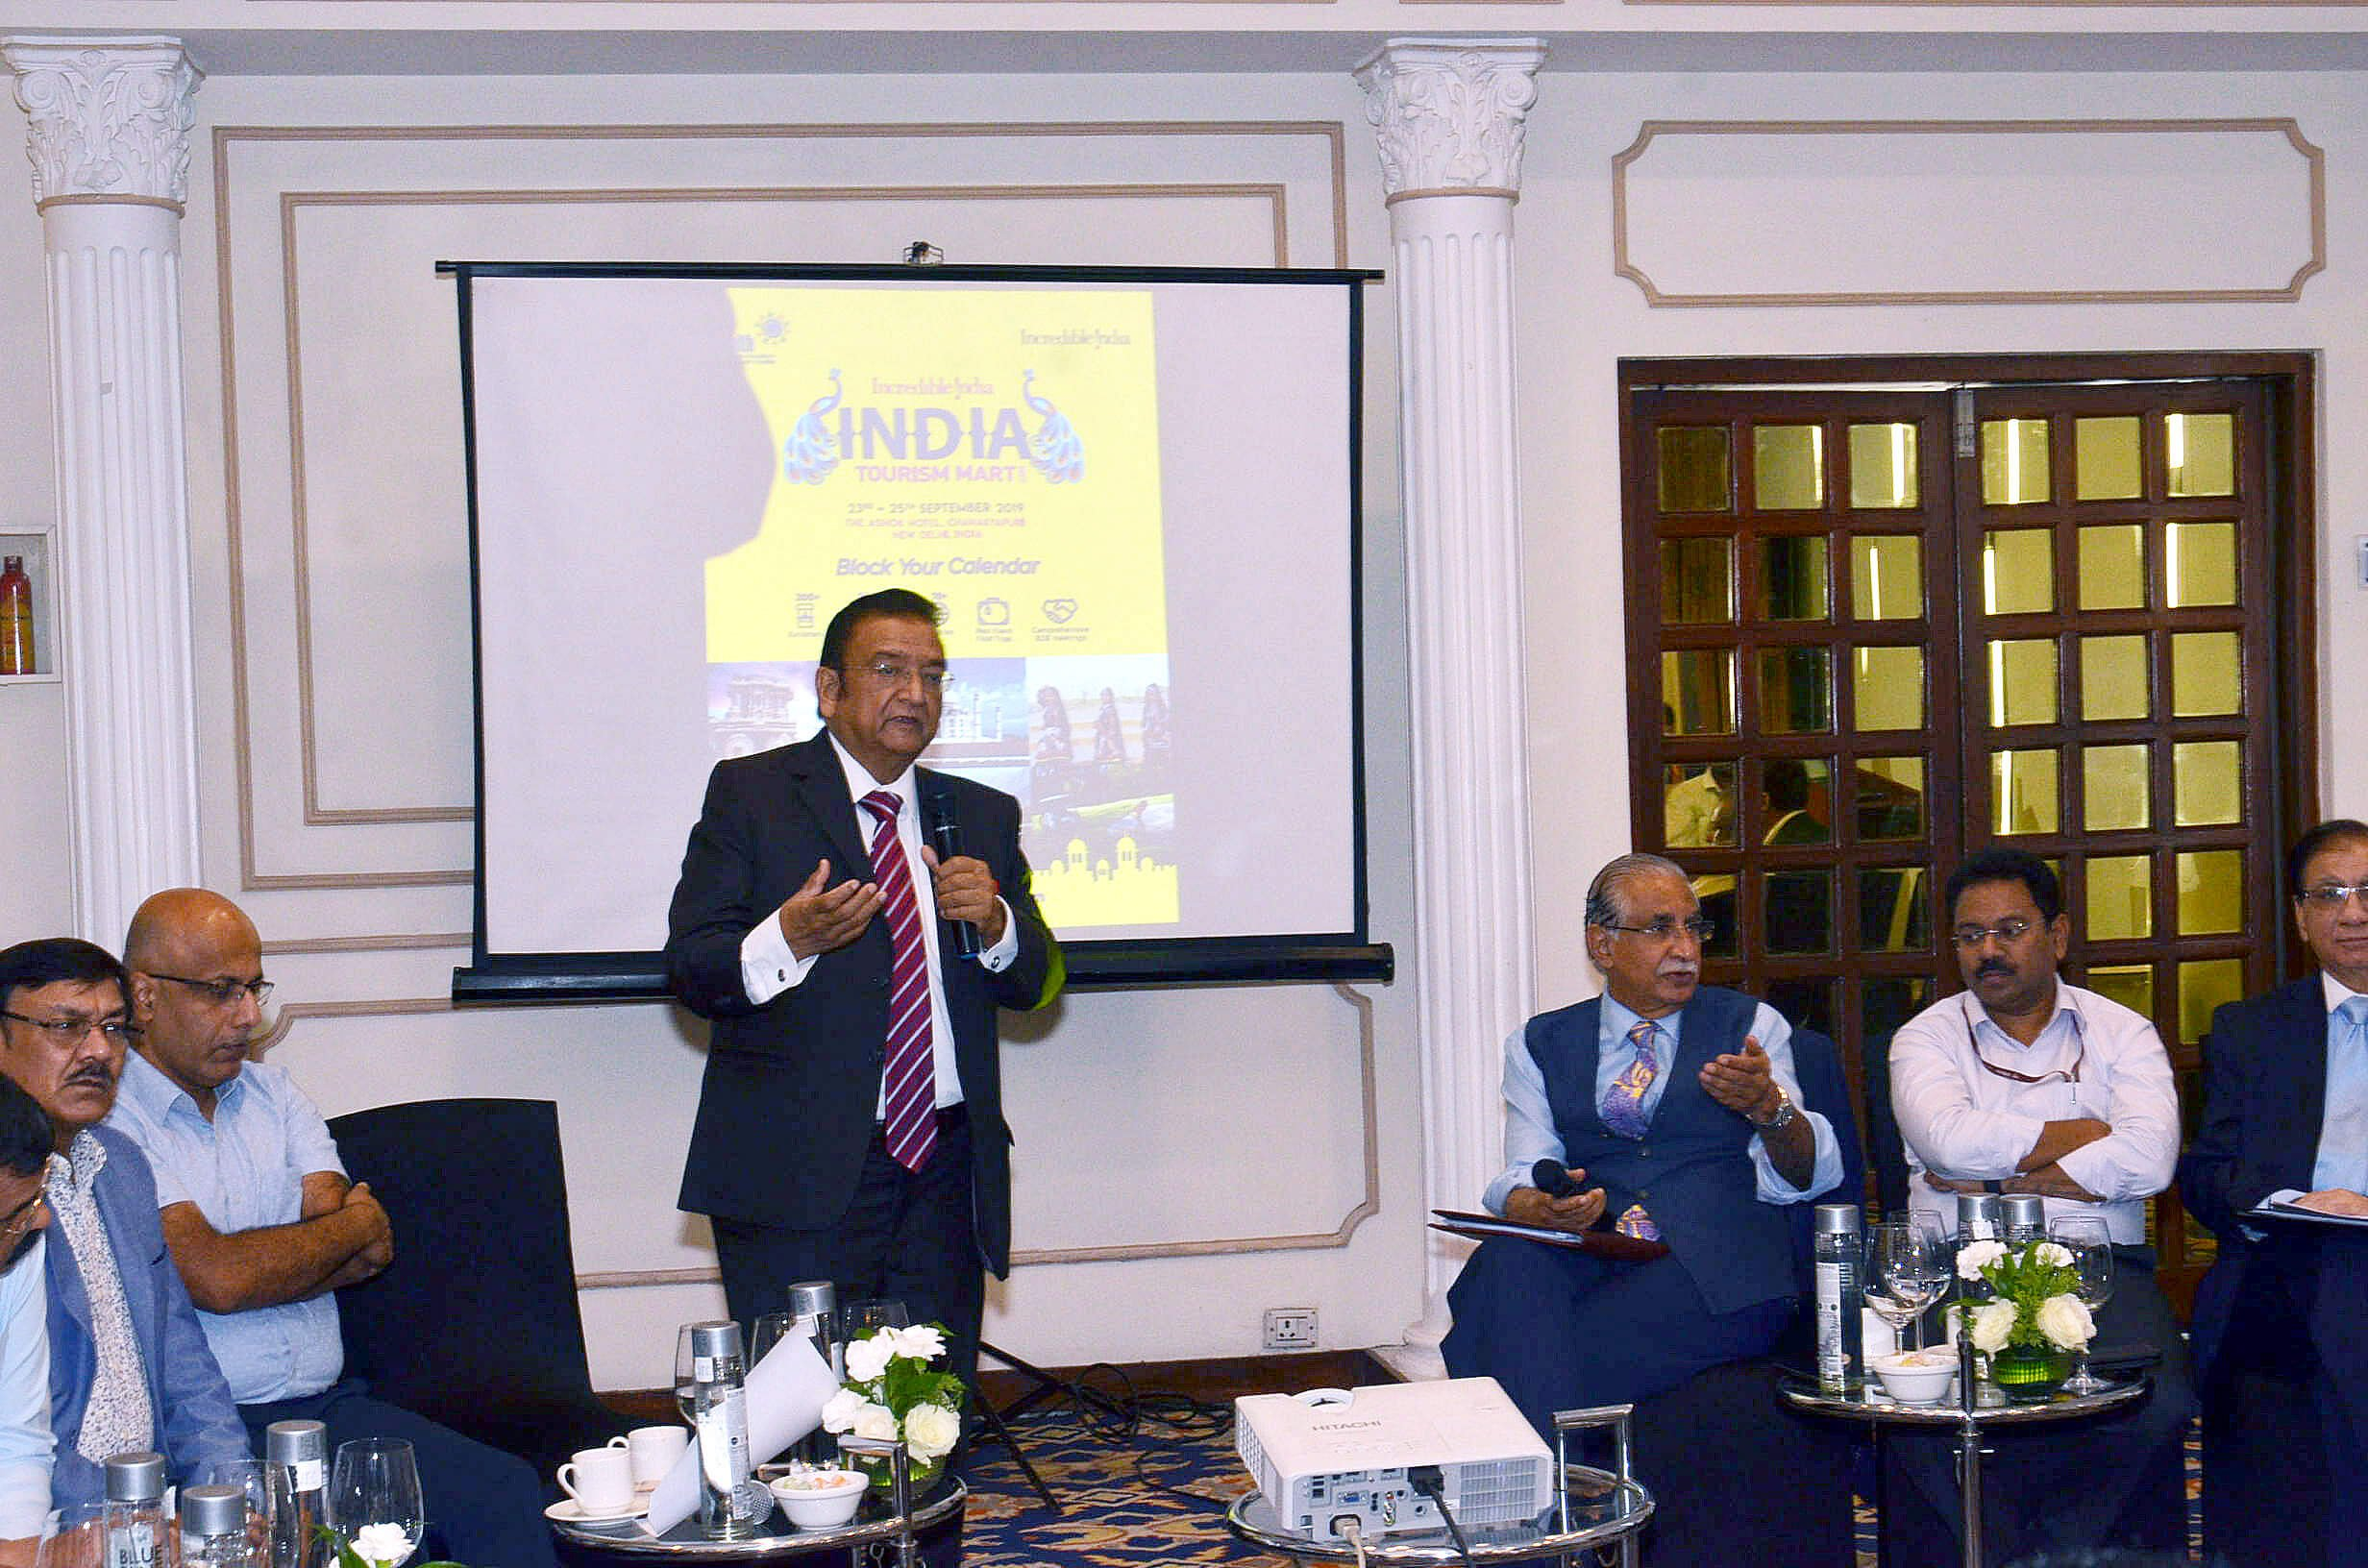 India Tourism Mart: Country's biggest Buyer-Seller inbound tourism event